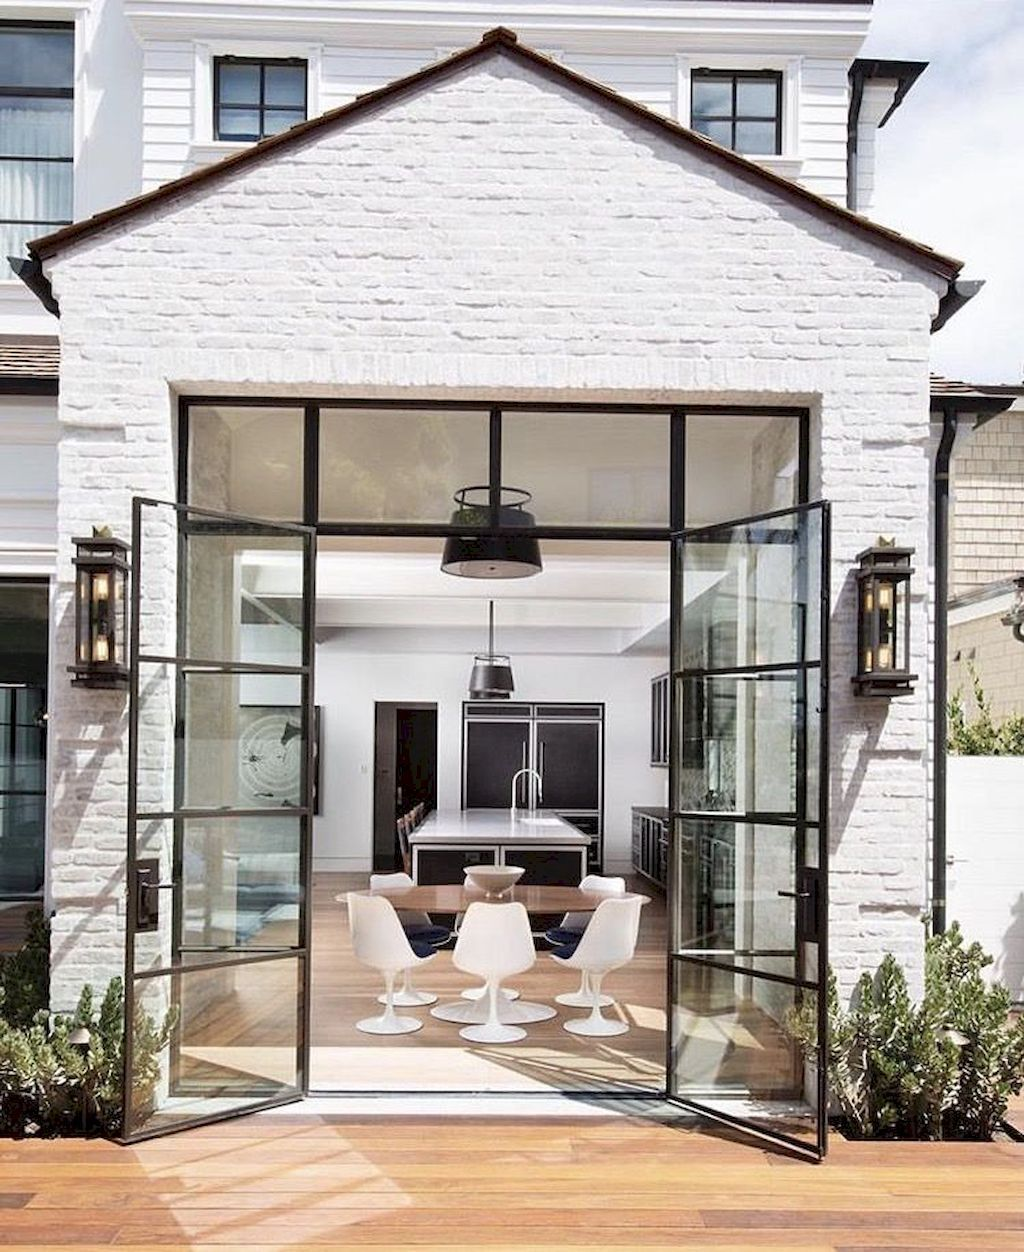 56 Stylish home Black and white house exterior design (38 images